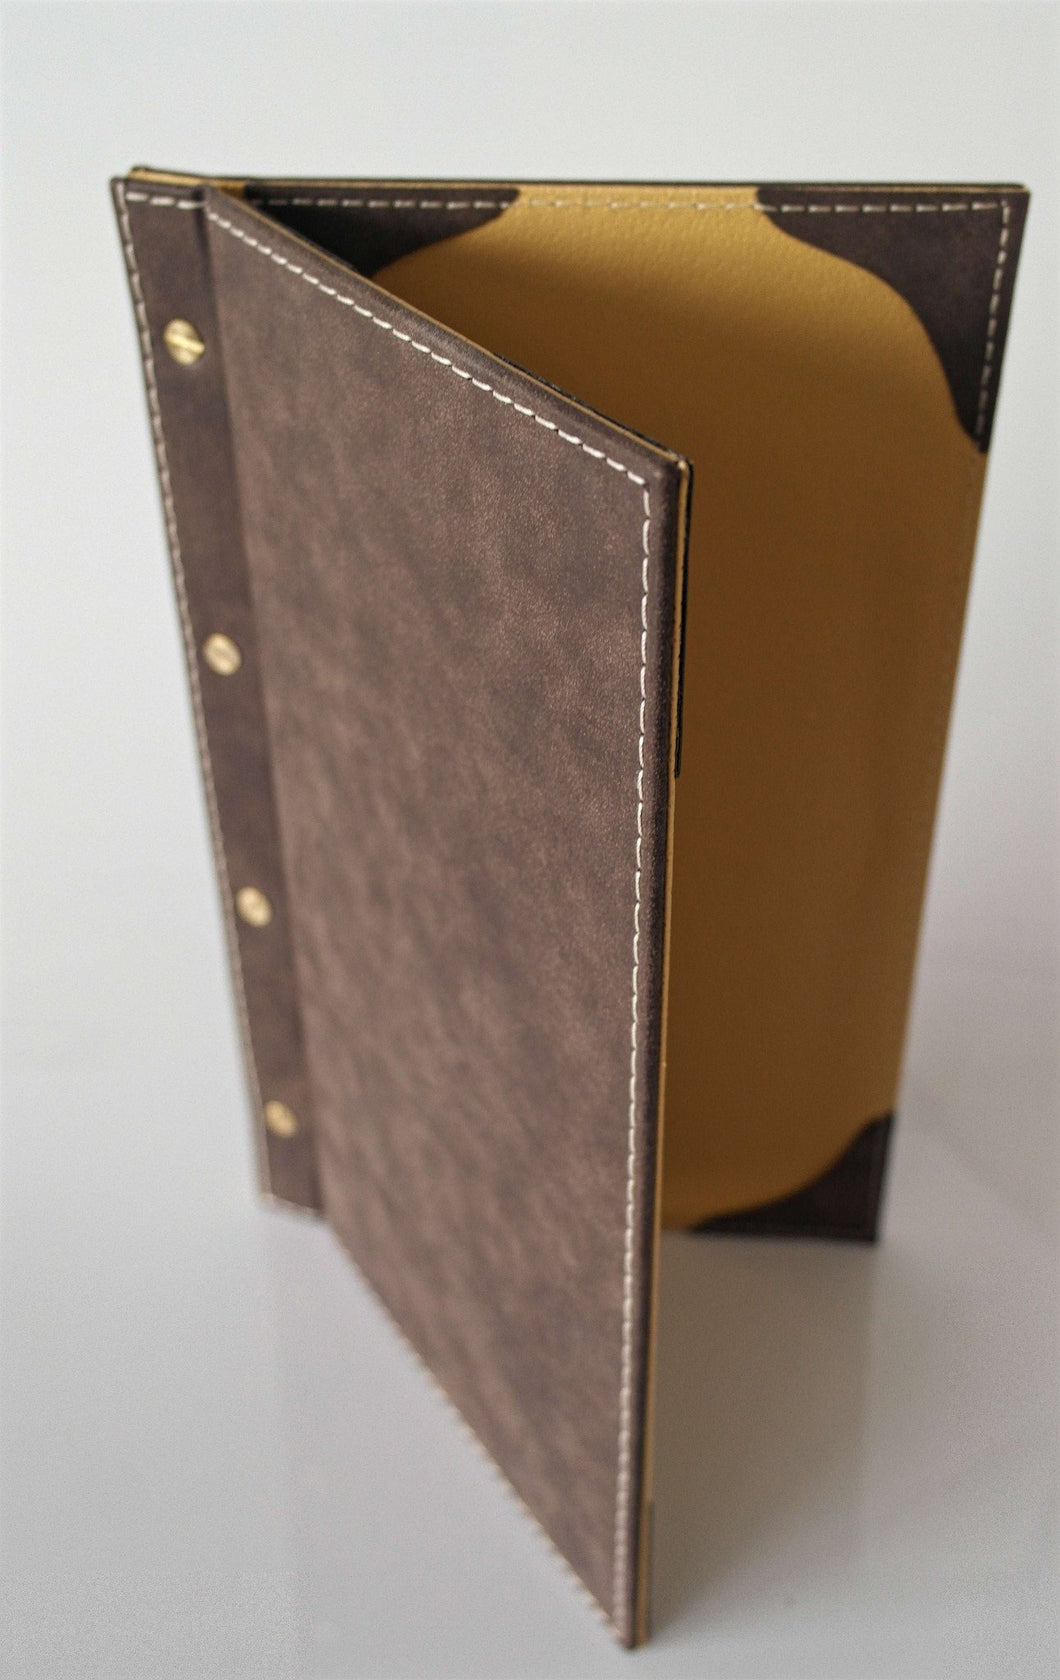 Set of 25, Wine List Covers for Double Menu Hardcover Suede Design with Gold Screw Available in 11 colors - Rattanglobal